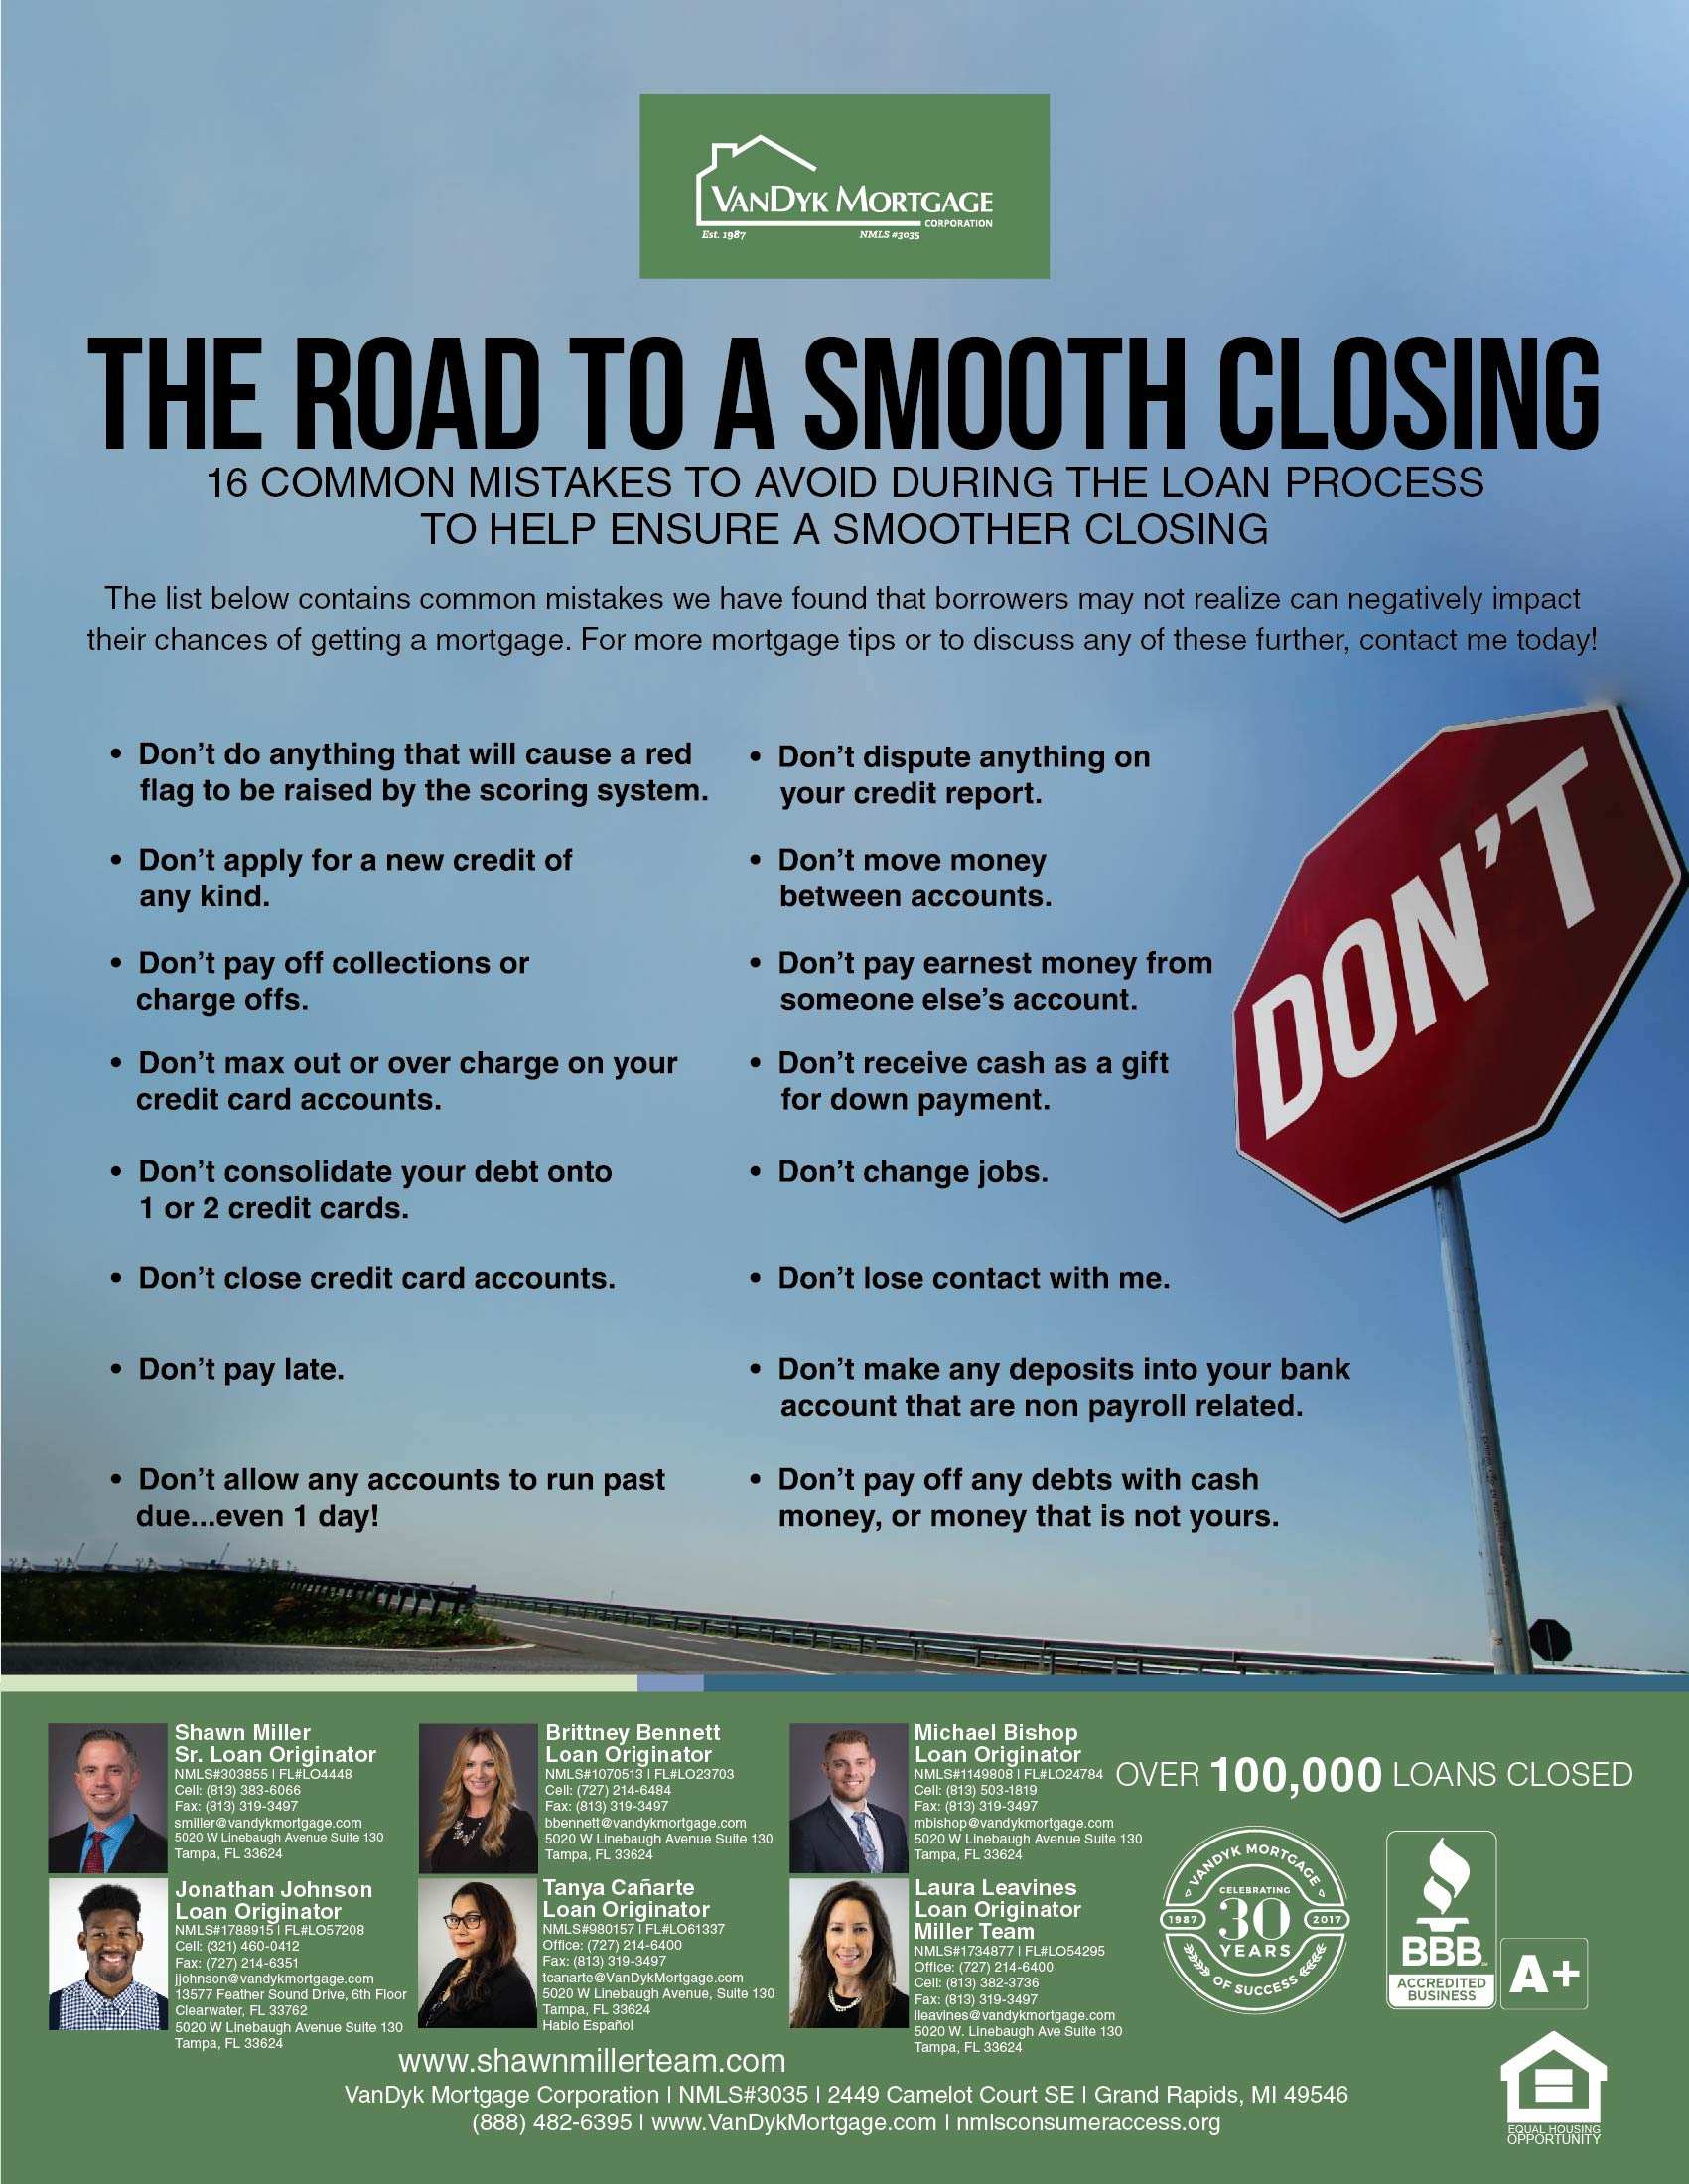 The Road to a Smooth Closing Miller Team 11.15.19.jpg